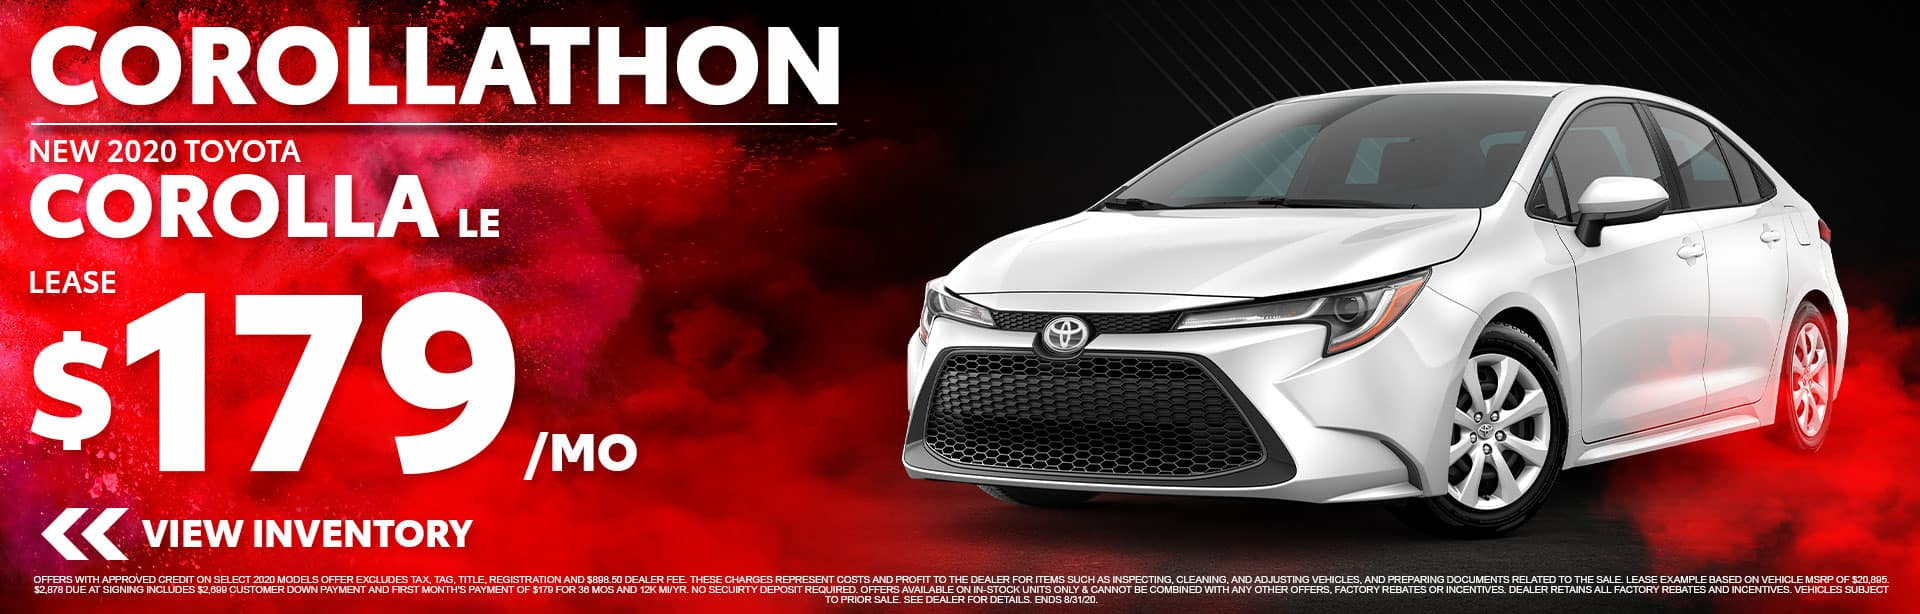 Lease a New 2020 Toyota Corolla LE for $179/mo at Bev Smith Toyota!